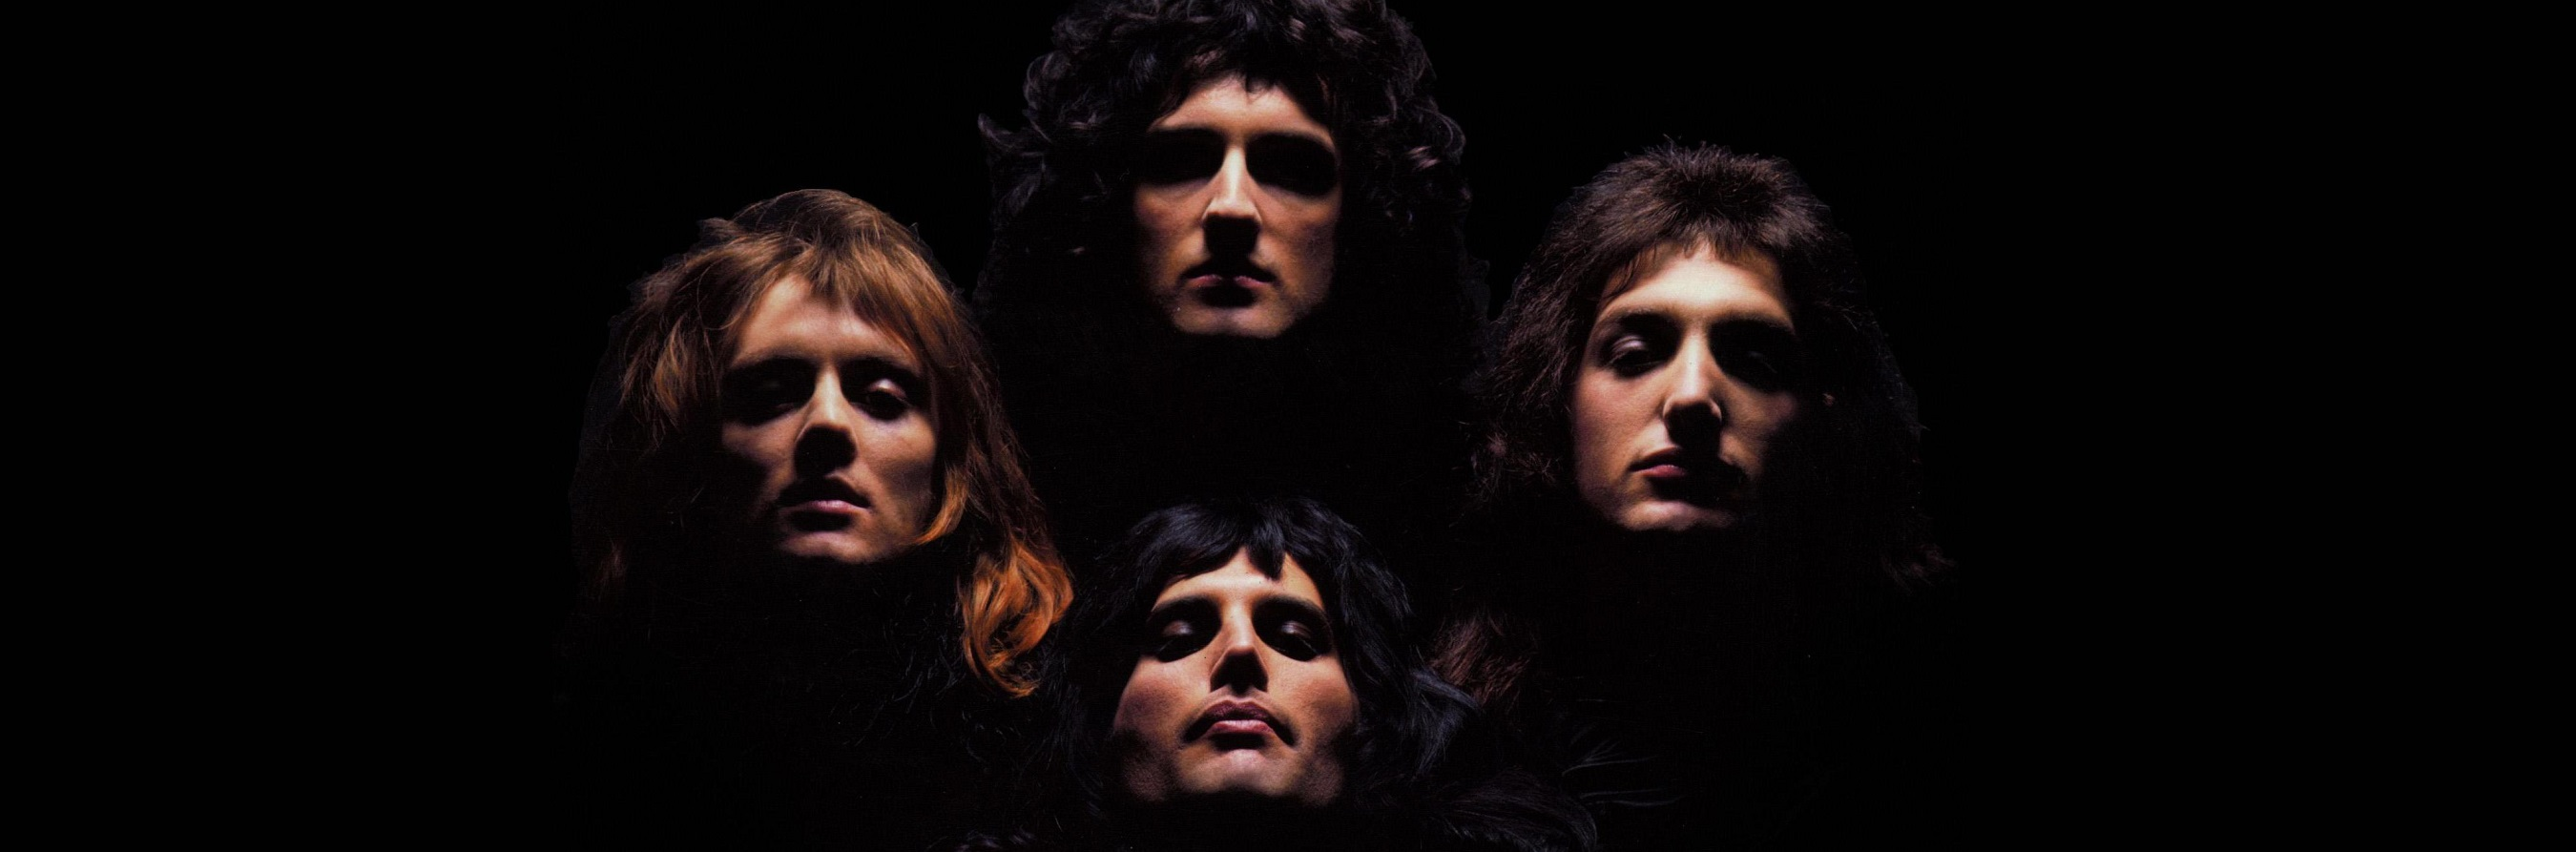 Vinyl of the Week: A Night at the Opera by Queen | Toplife